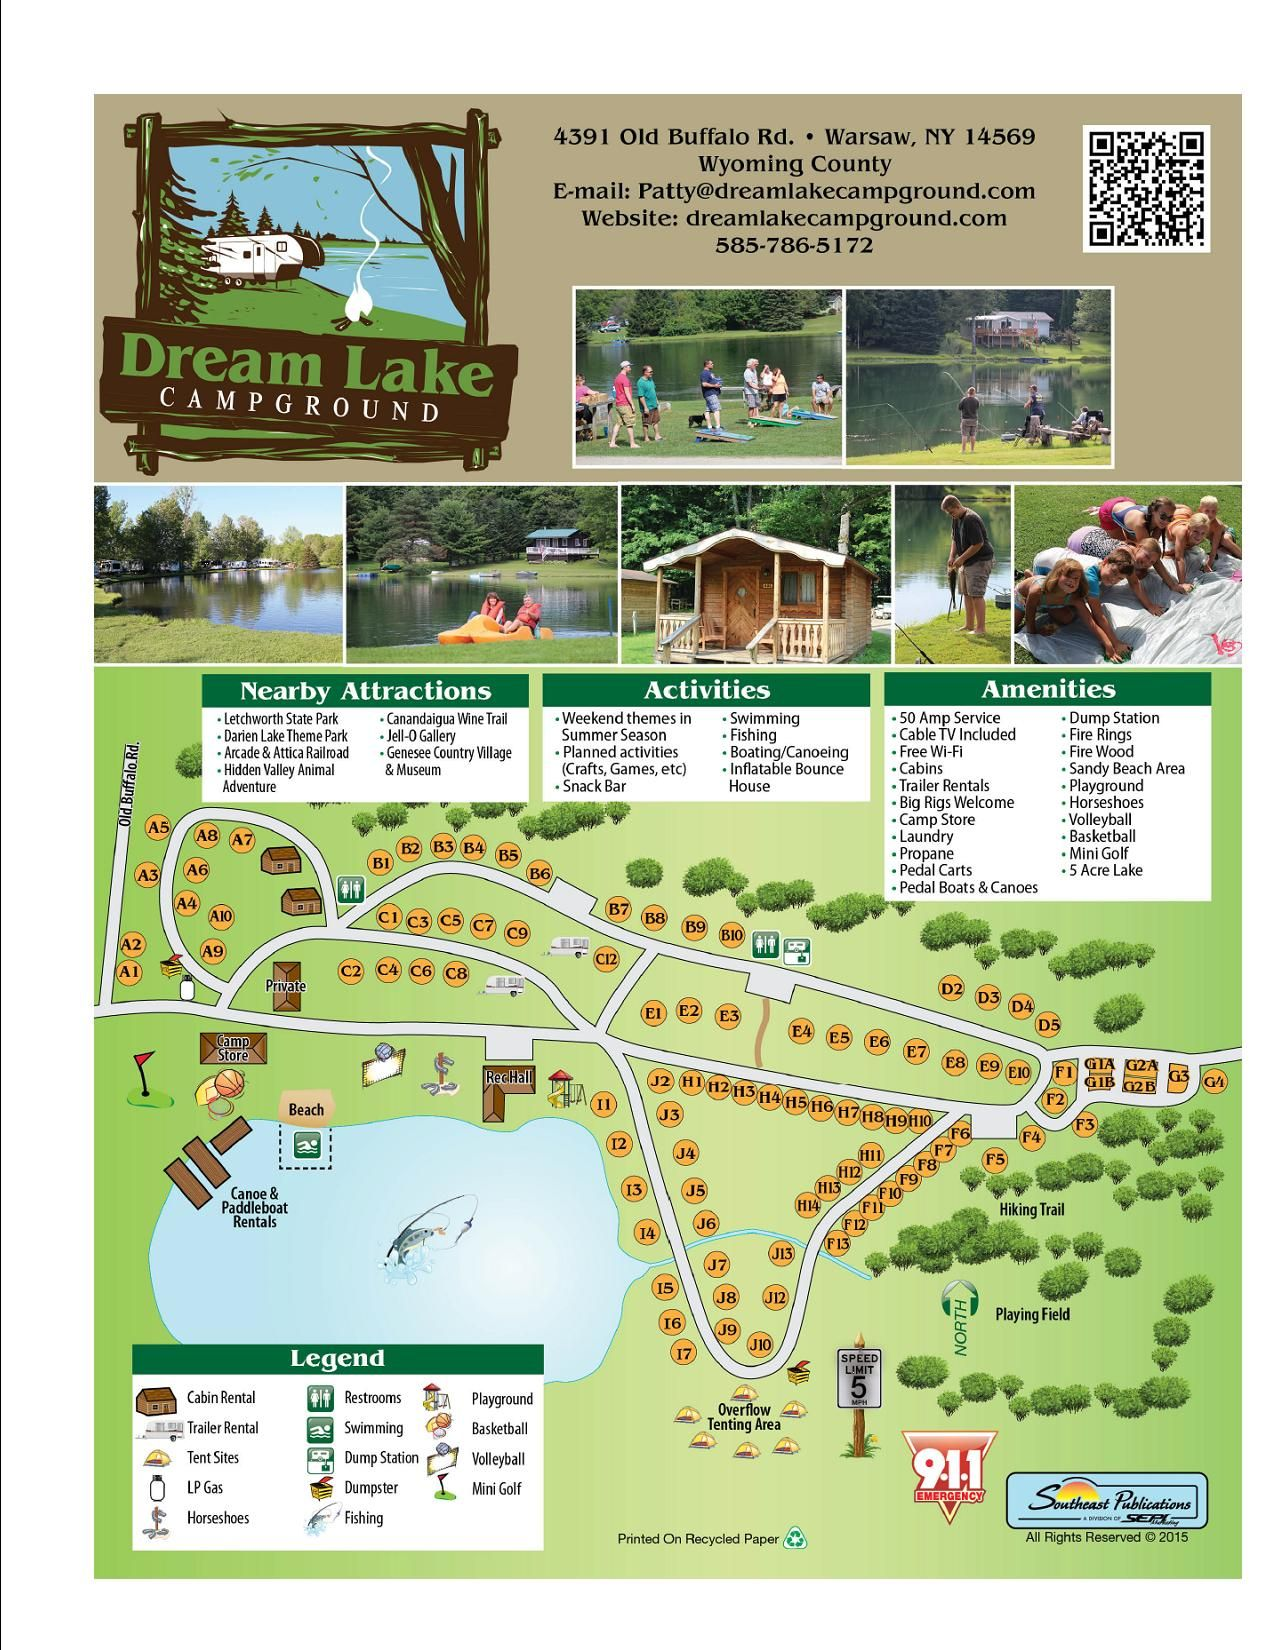 darien lake campground map How To Avoid The Negatives Of Camping Camping Advice Camping darien lake campground map